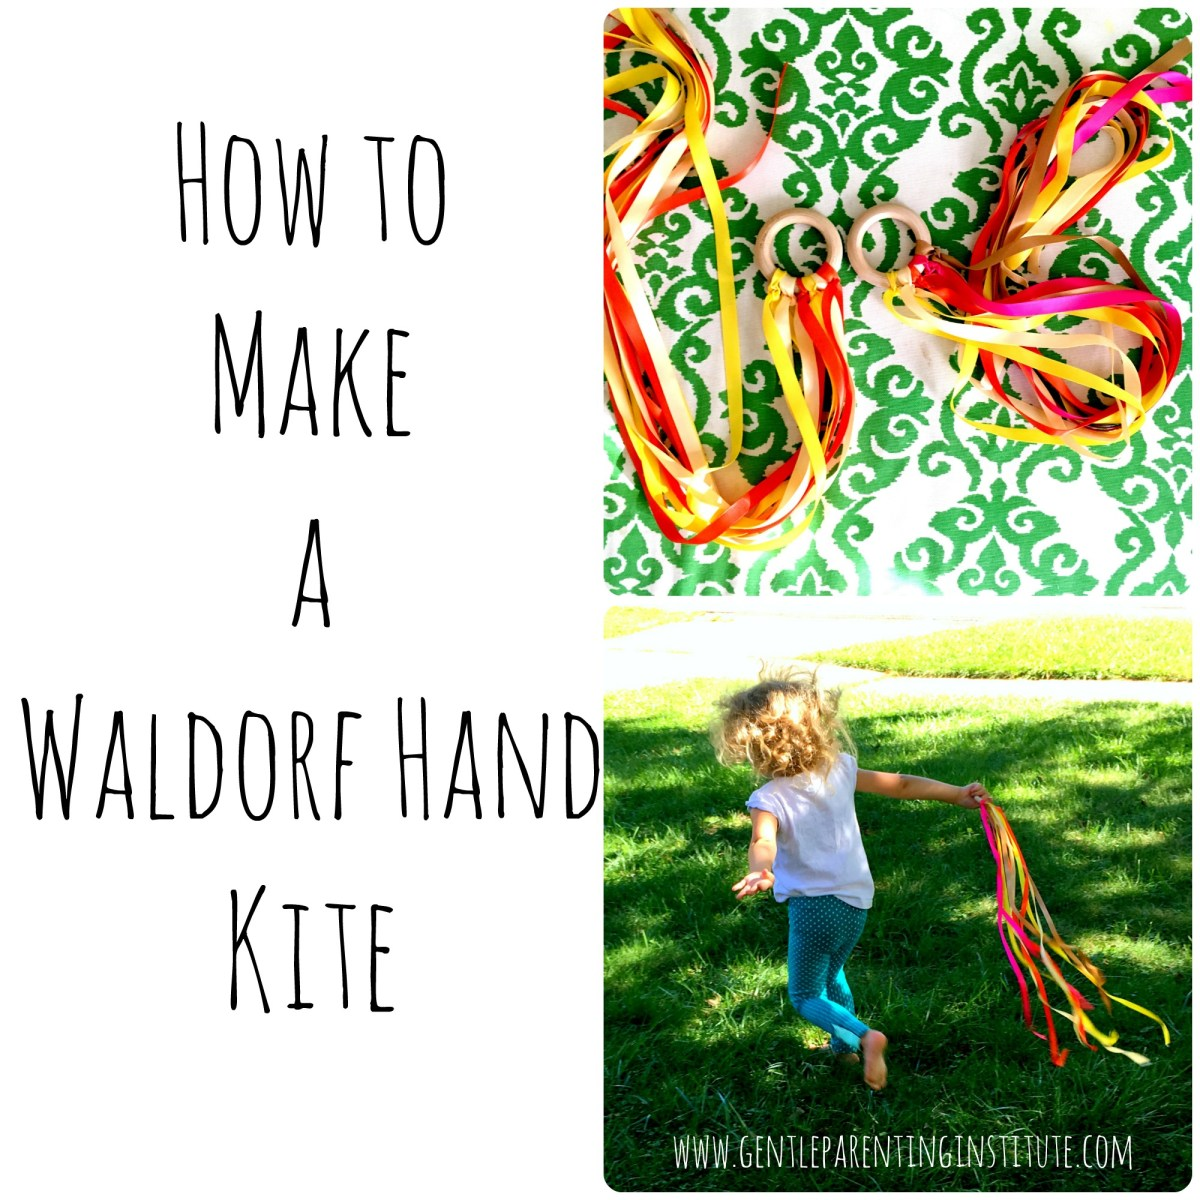 How to Make a Waldorf Hand Kite